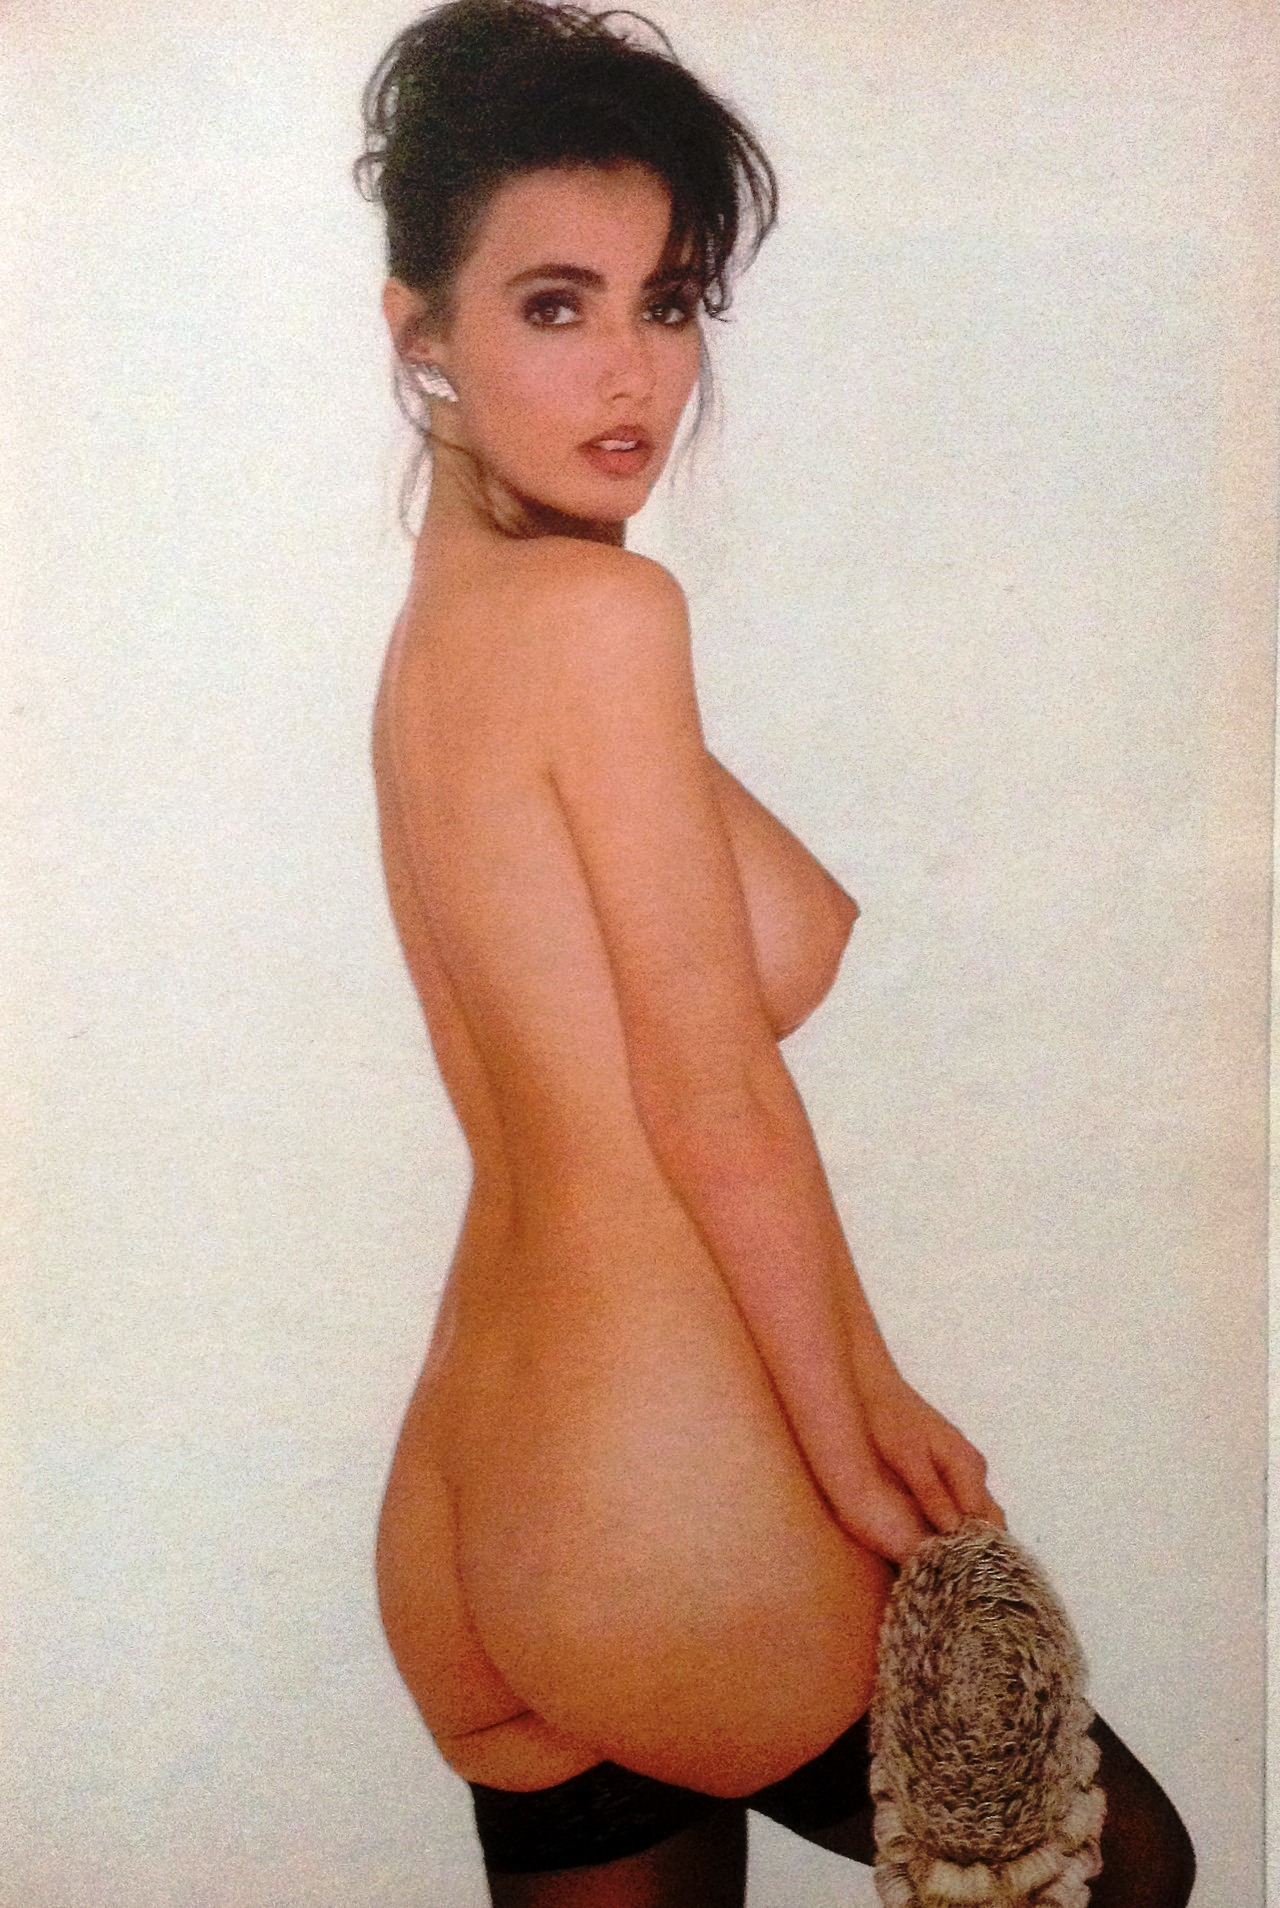 Suzanne lloyd ever nude photo online